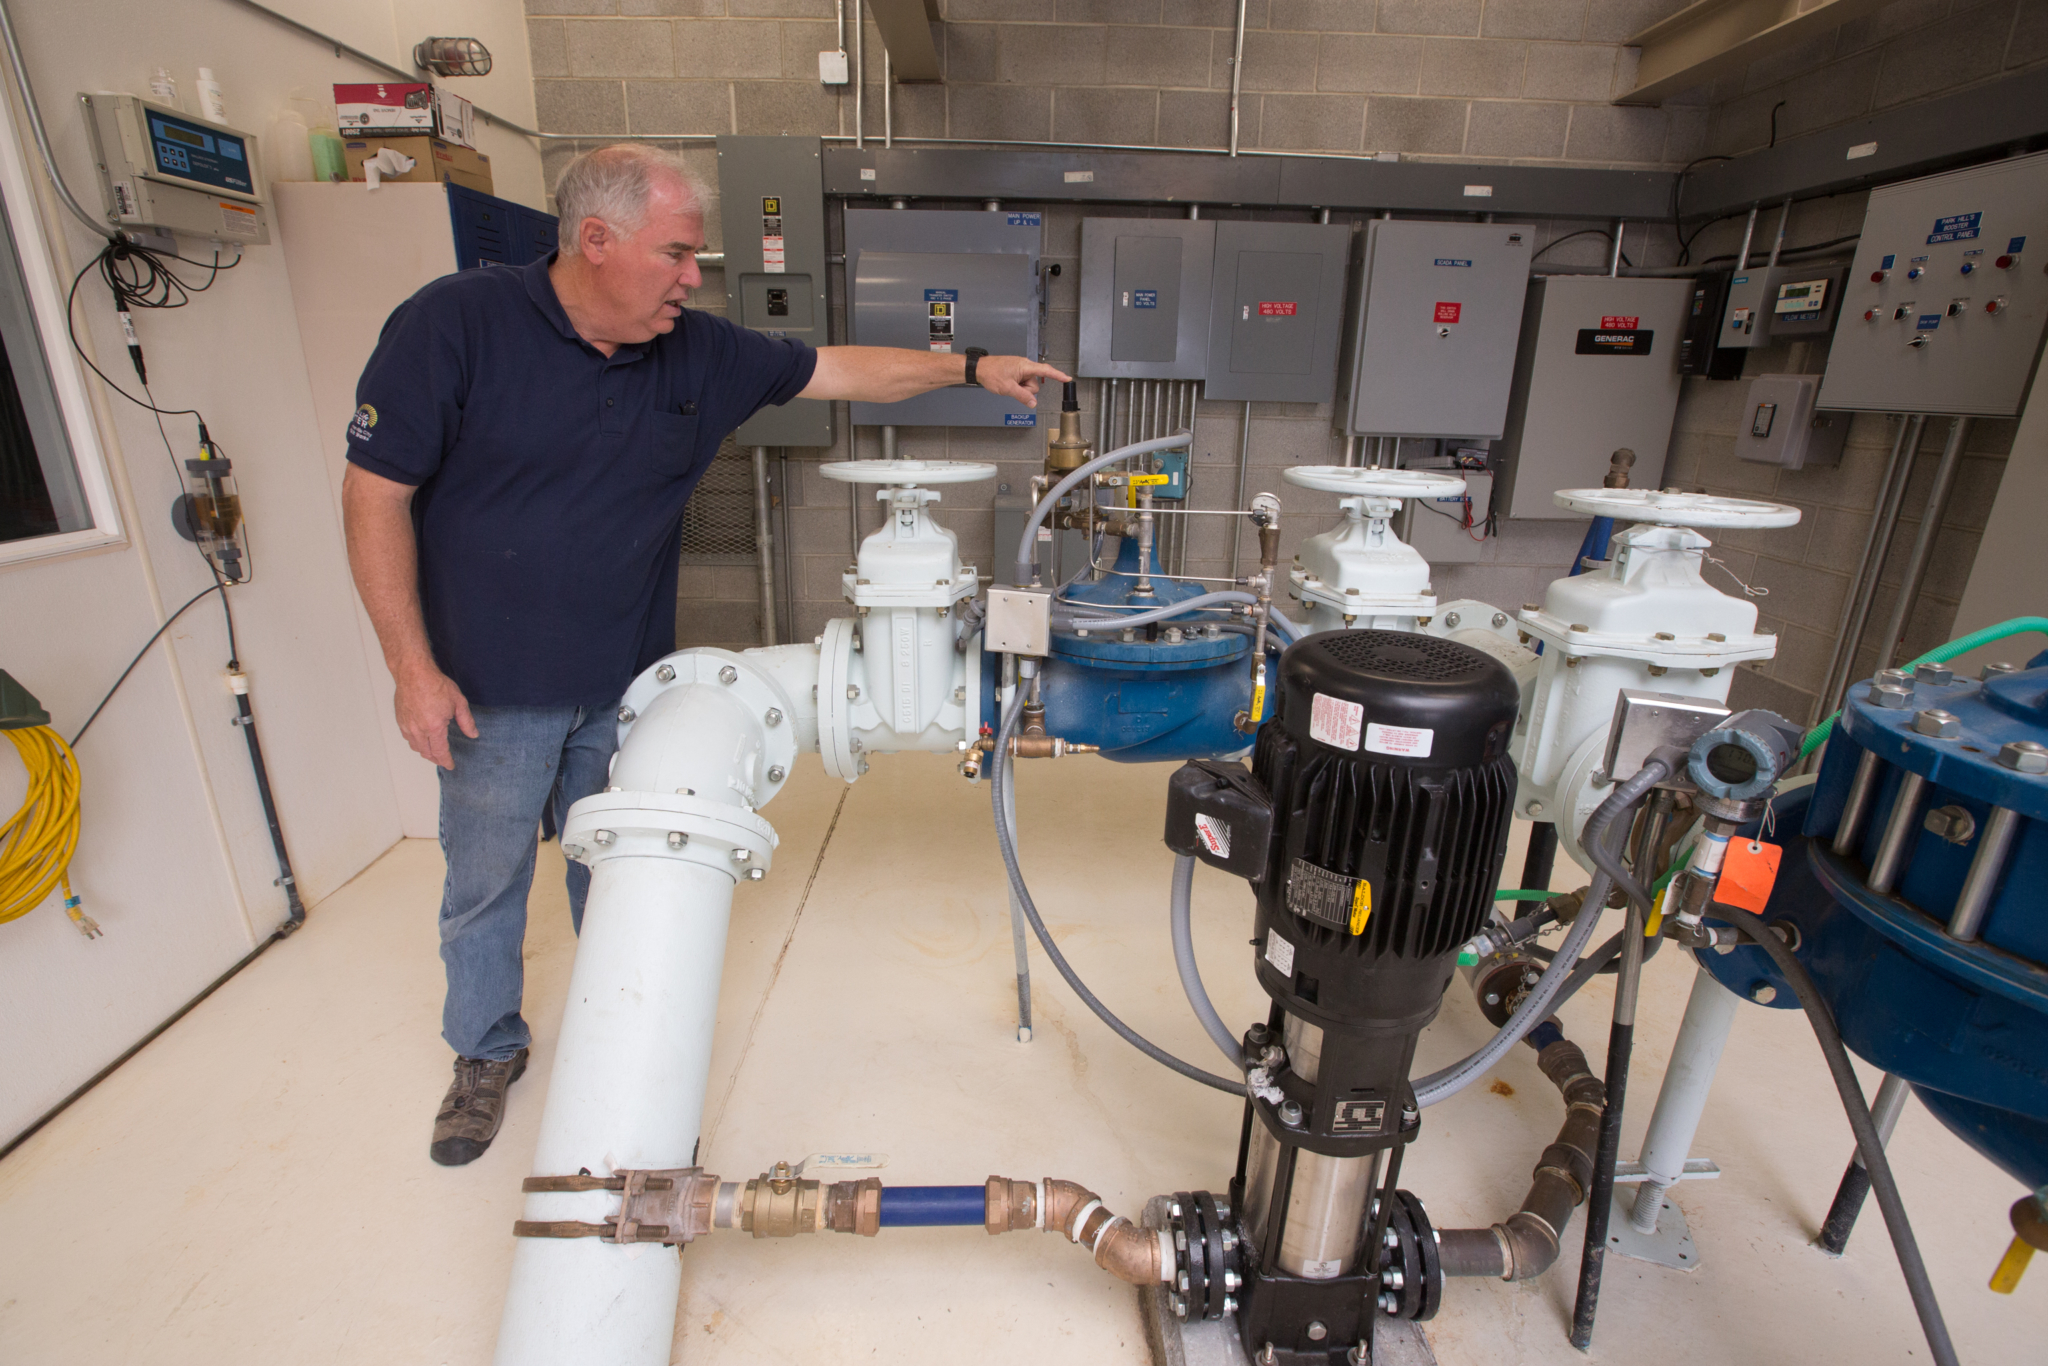 Randy Randall, director of Public Works for Centerville City, Utah, has an enthusiastic approach to his job that helped earn the utility recognition for its accomplishments. His understanding of the energy inherent in moving water and passion for meticulous testing has saved the city hundreds of thousands of dollars in power costs. Here, Randall shows how using a small Baldour Reliance Super E Motor to pump at a lower pressure than is traditional helps to pump water in circles and keep the system pressurized, saving demand charges. (Photo By Sallie Shatz)